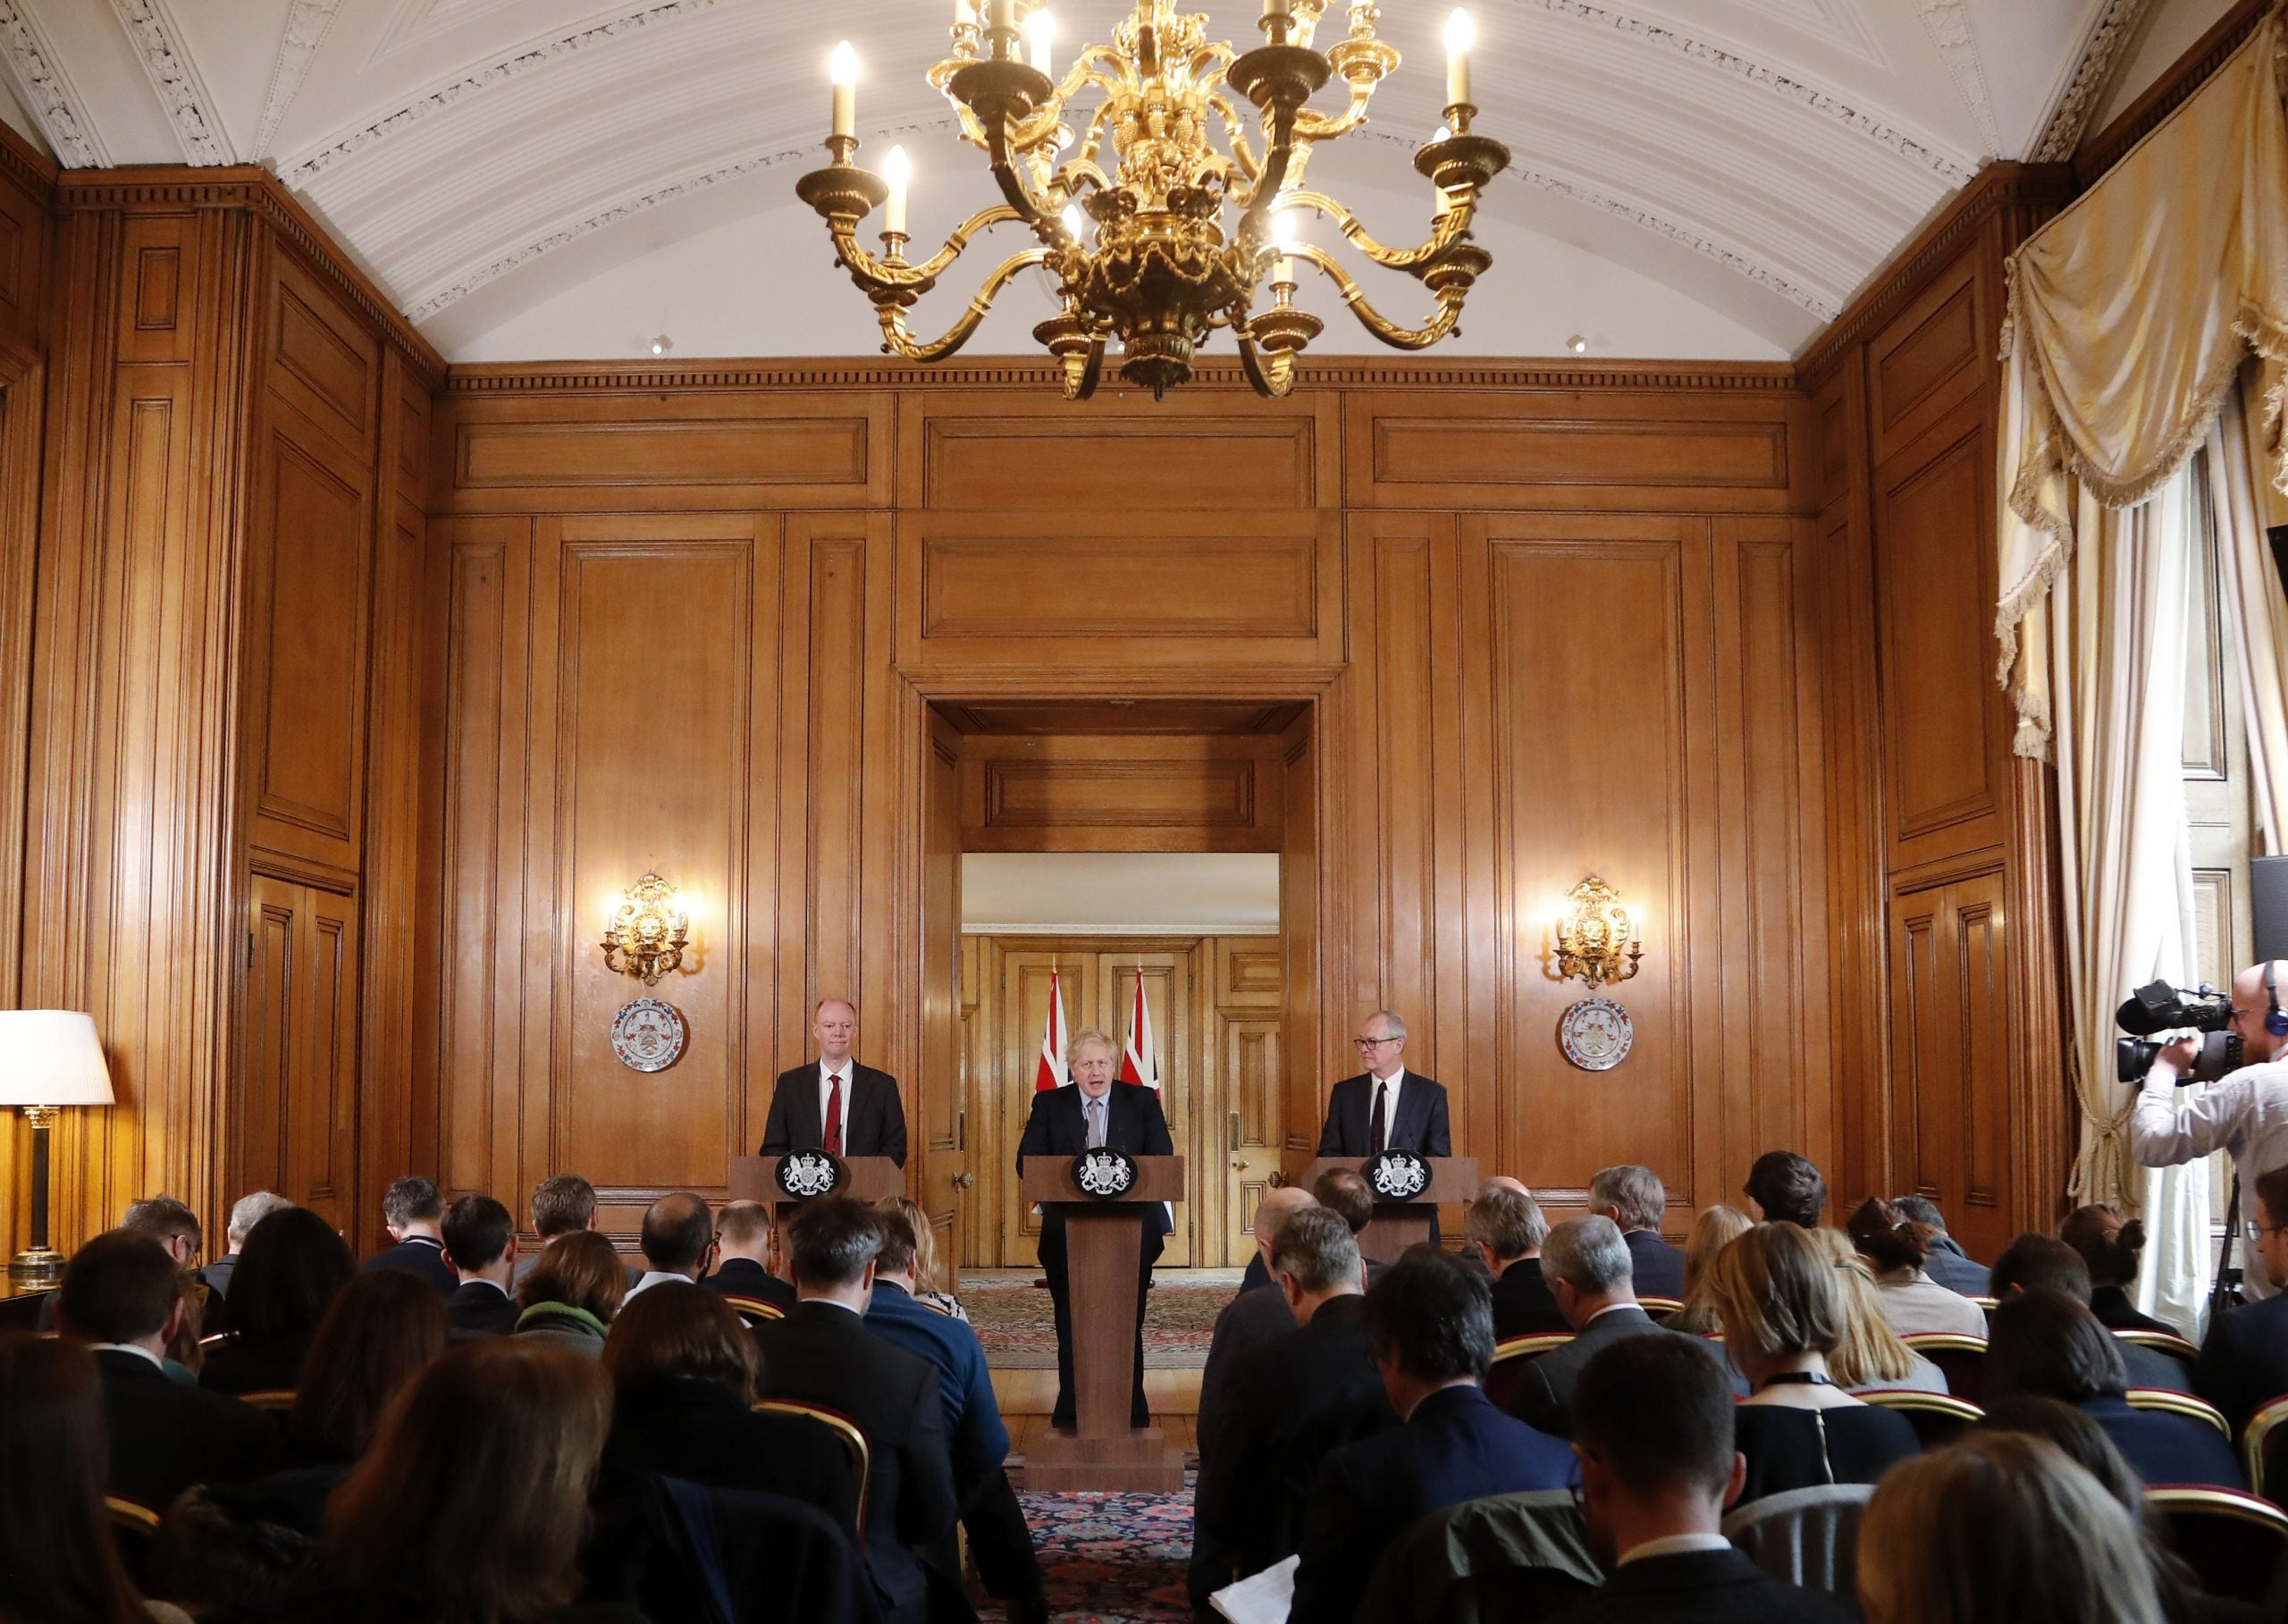 What is the point of the government's daily press conferences?